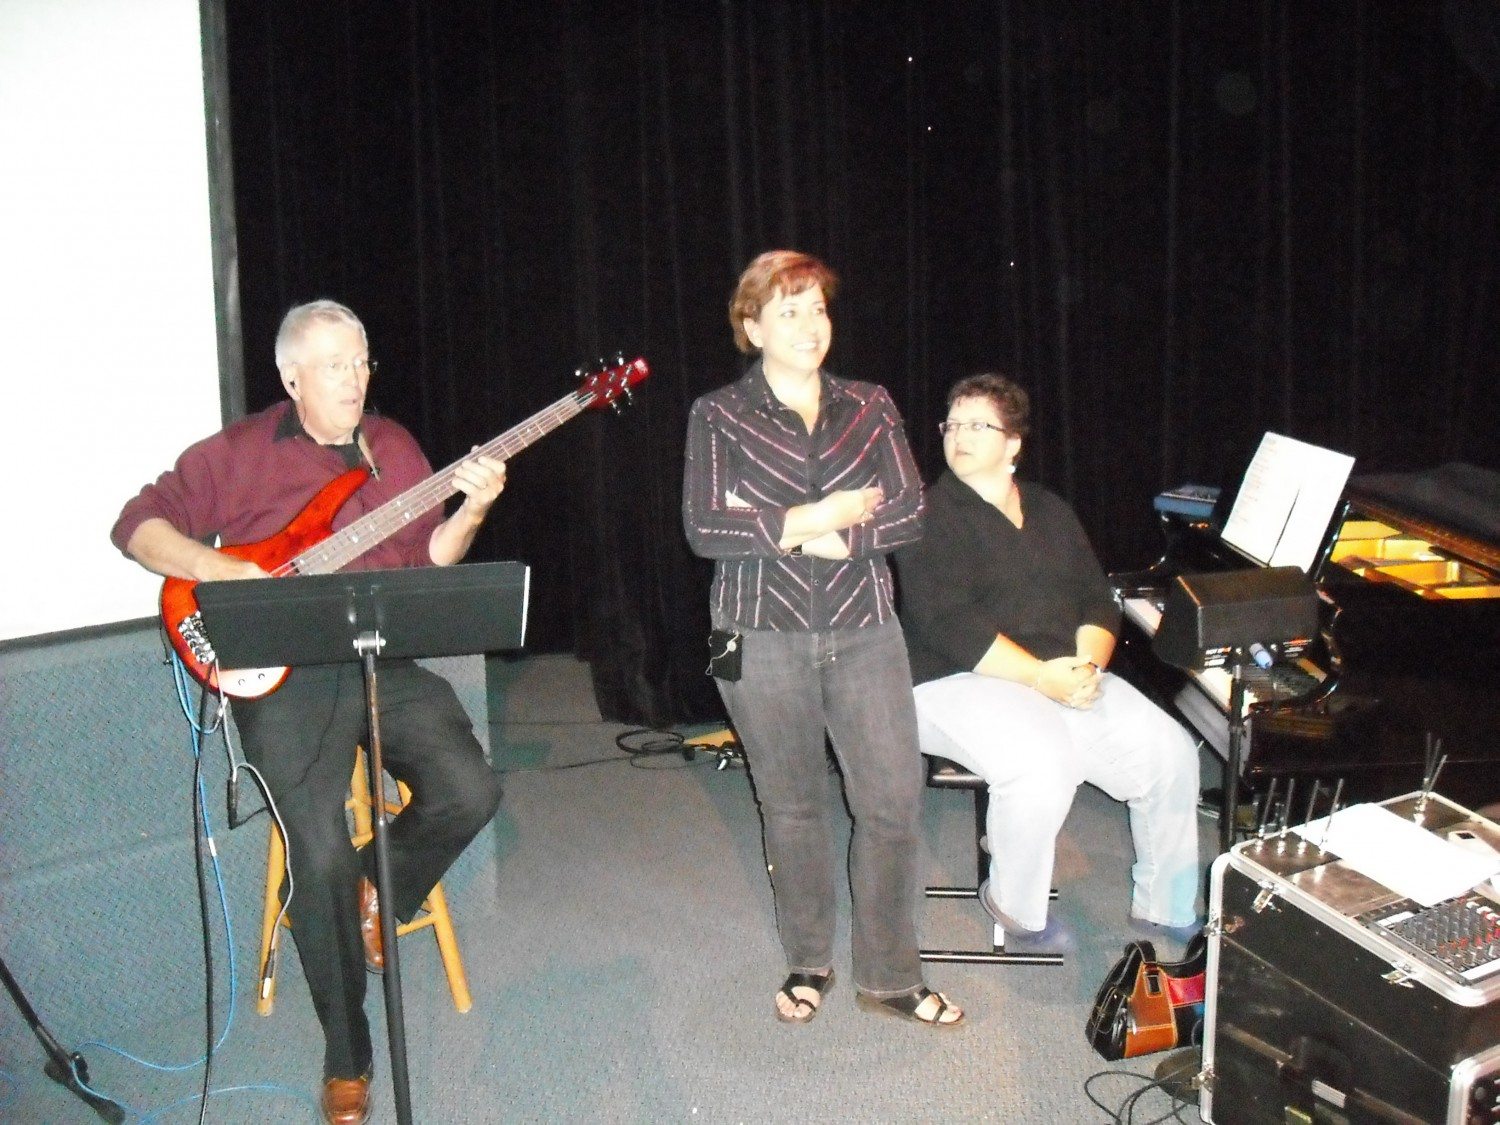 Peter on bass, Dianne, Arlene on piano at Spruce Grove Alliance